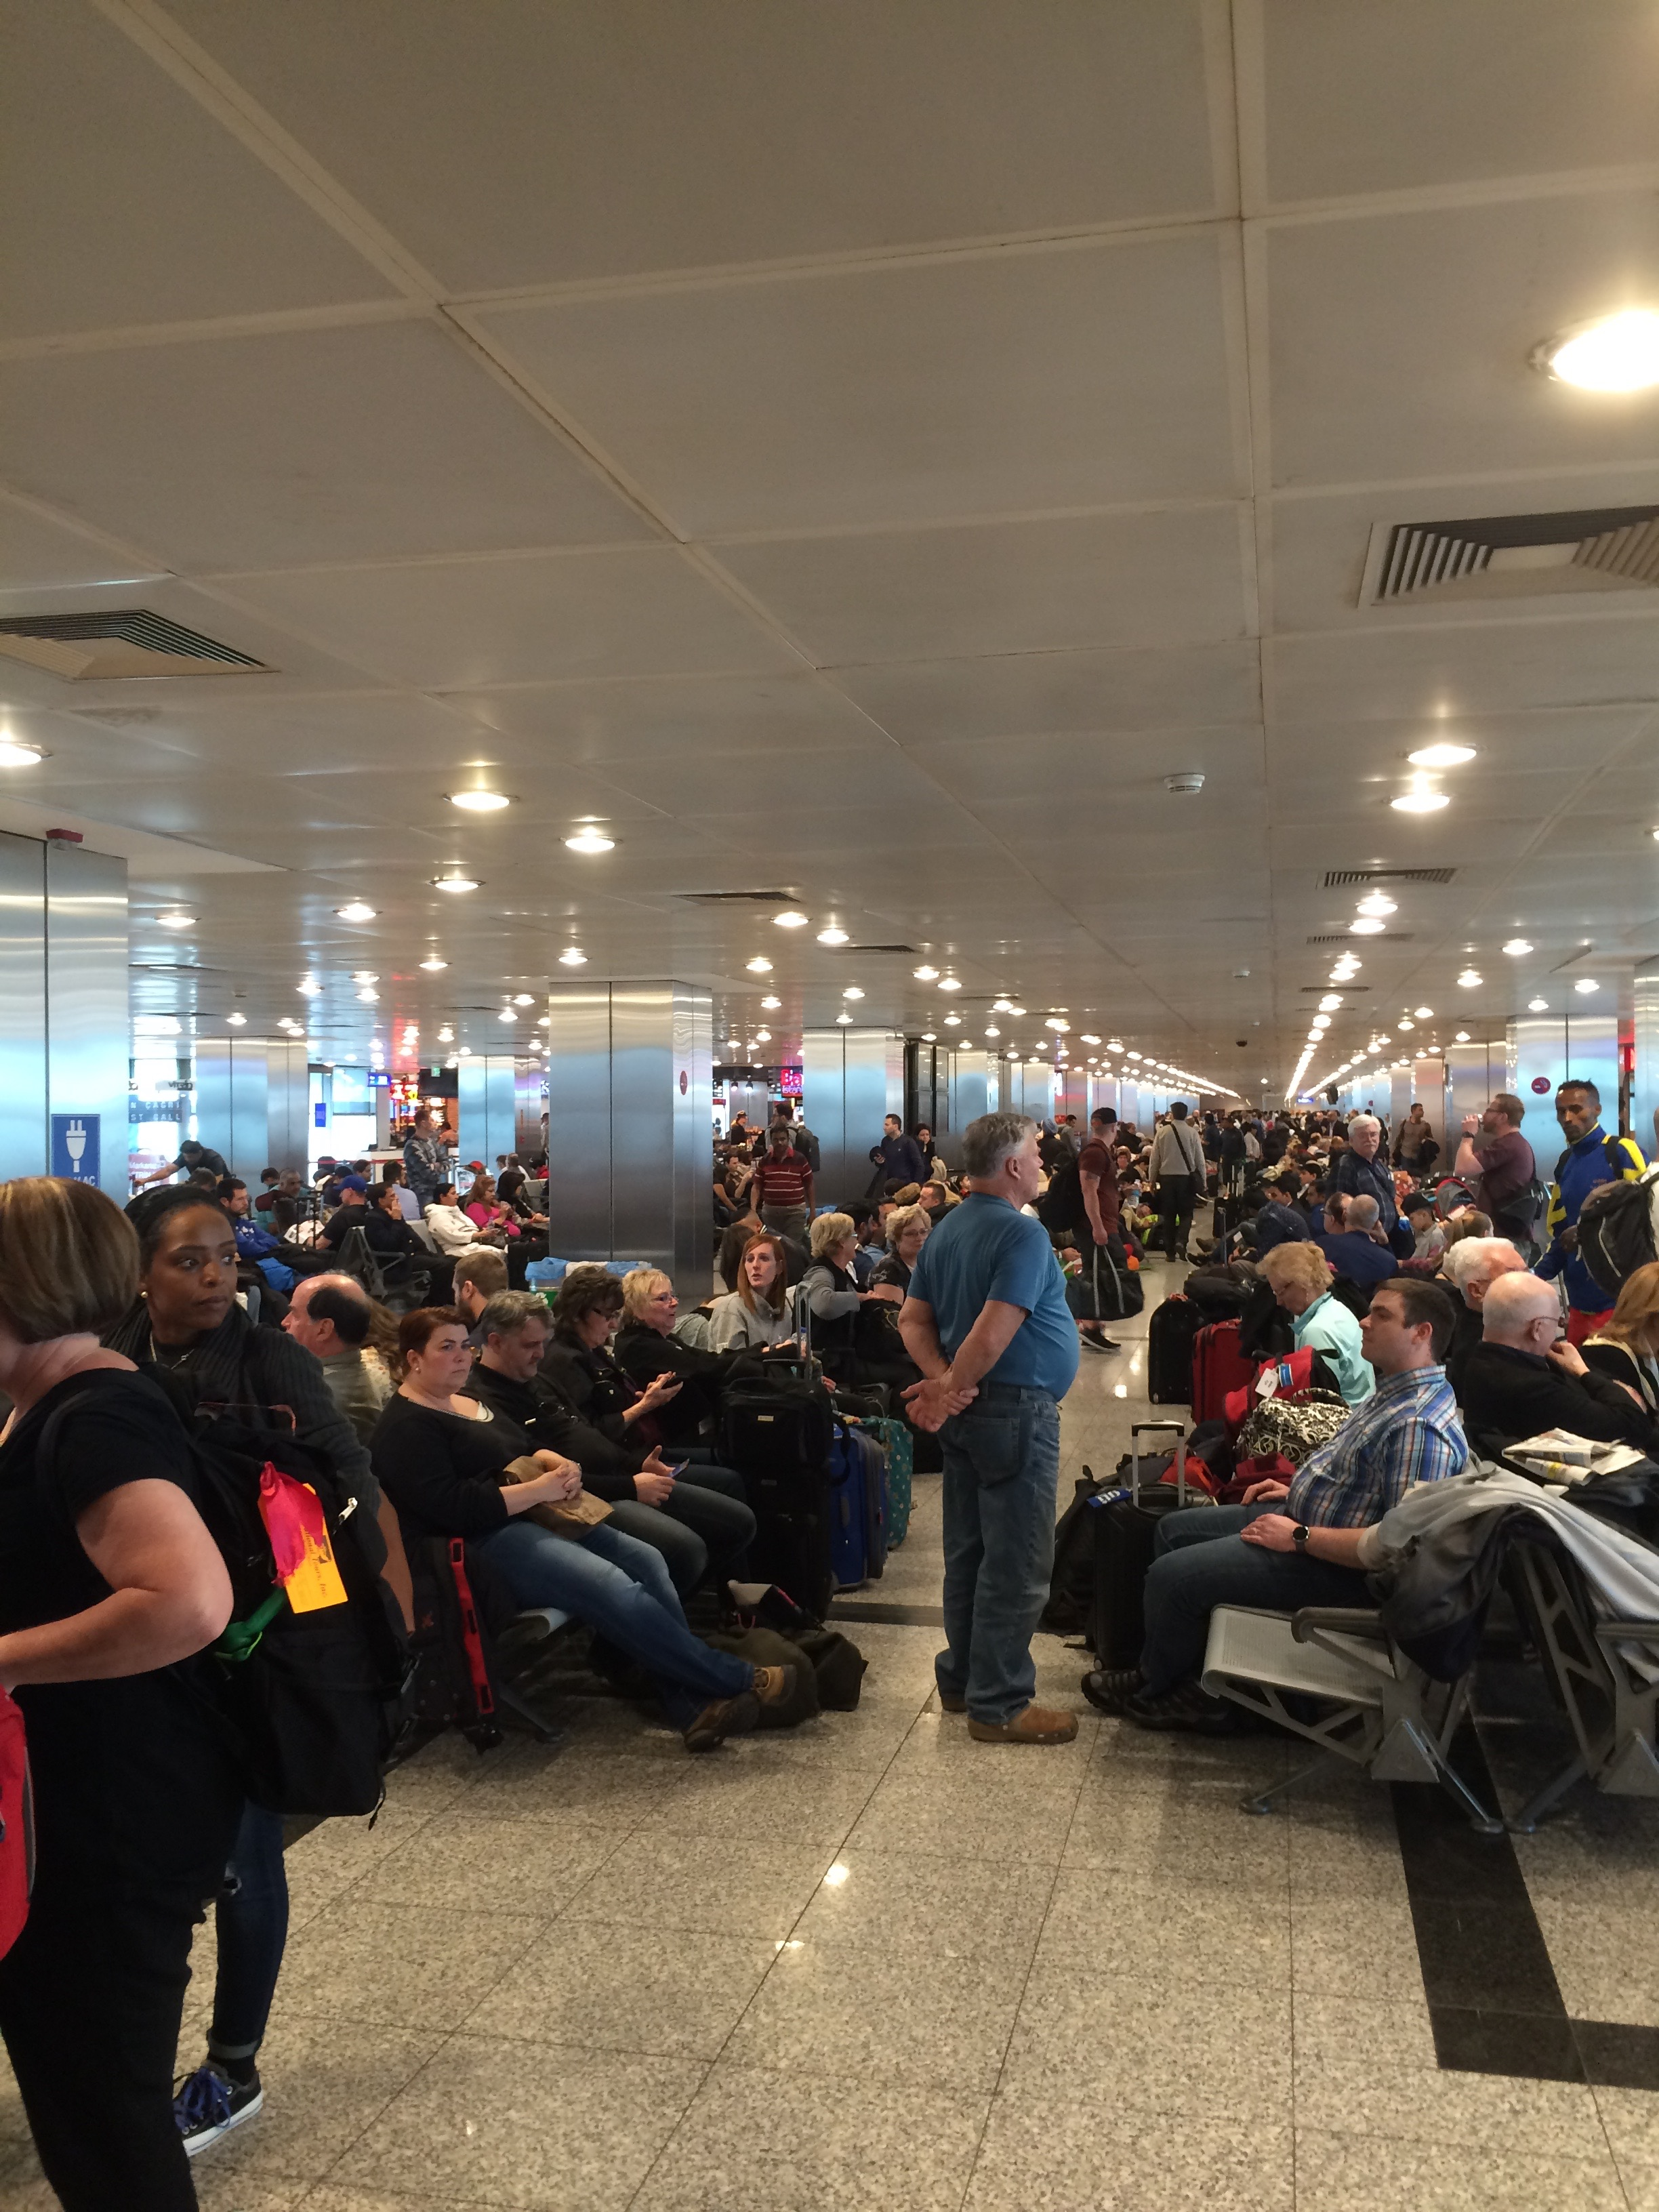 I thought this was it folks. The Istanbul airport in all of its glory.